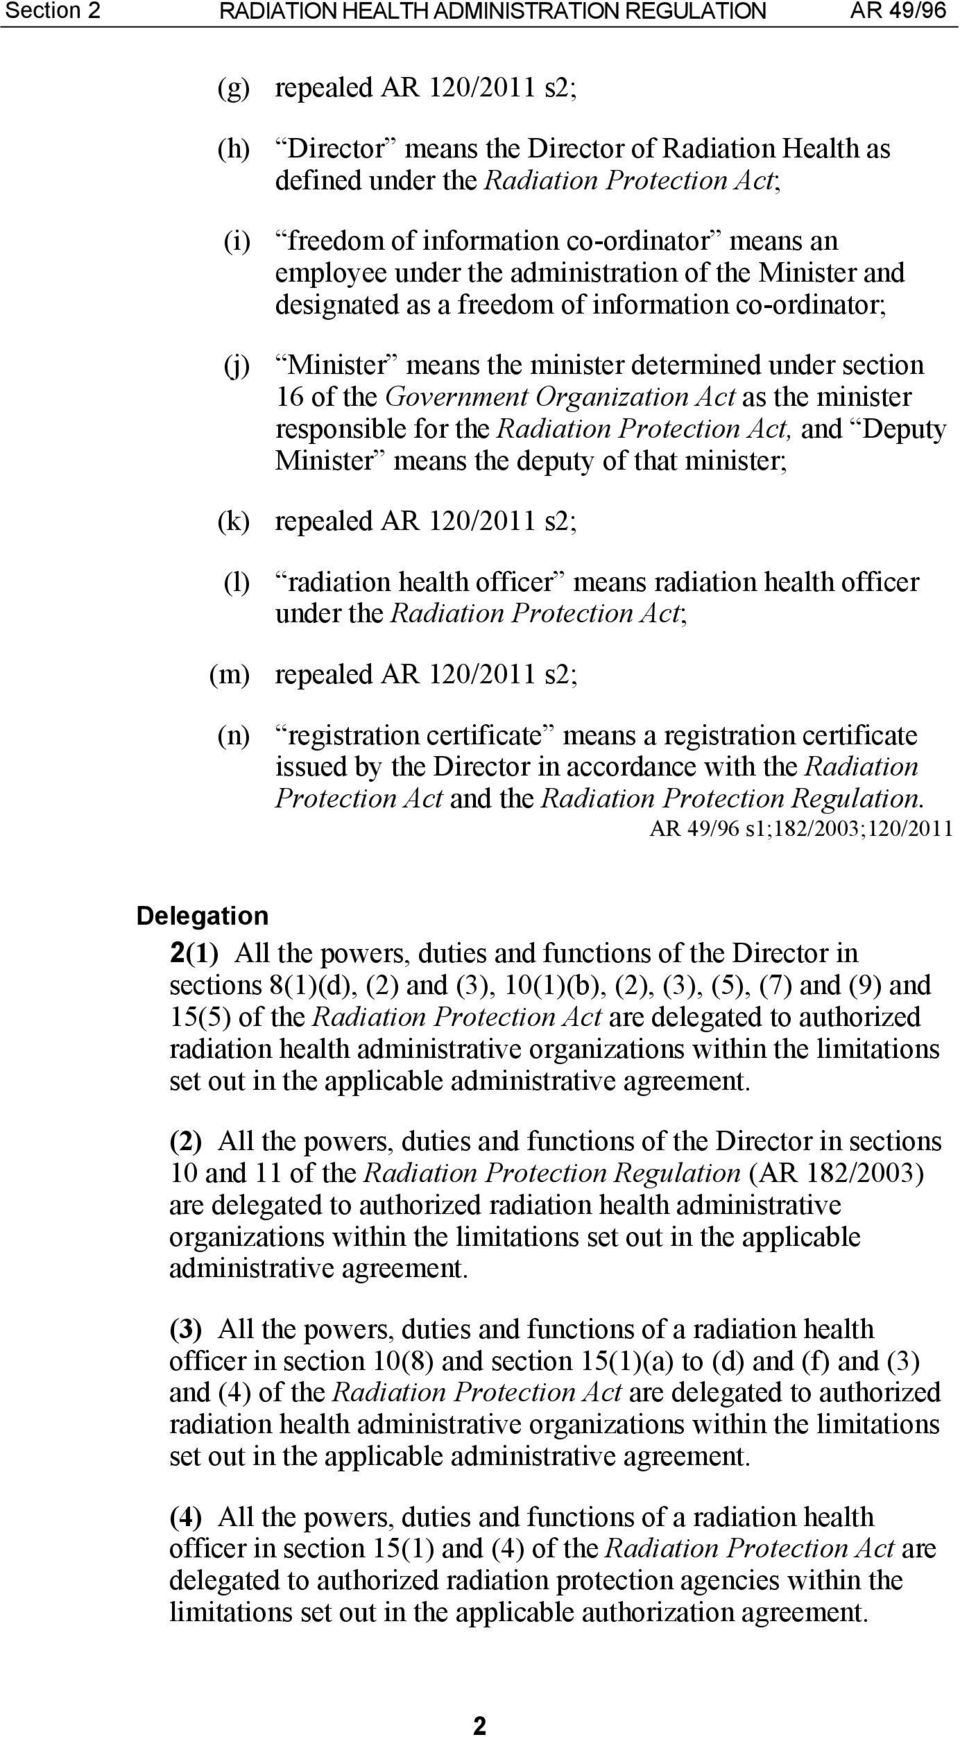 under section 16 of the Government Organization Act as the minister responsible for the Radiation Protection Act, and Deputy Minister means the deputy of that minister; (k) repealed AR 120/2011 s2;